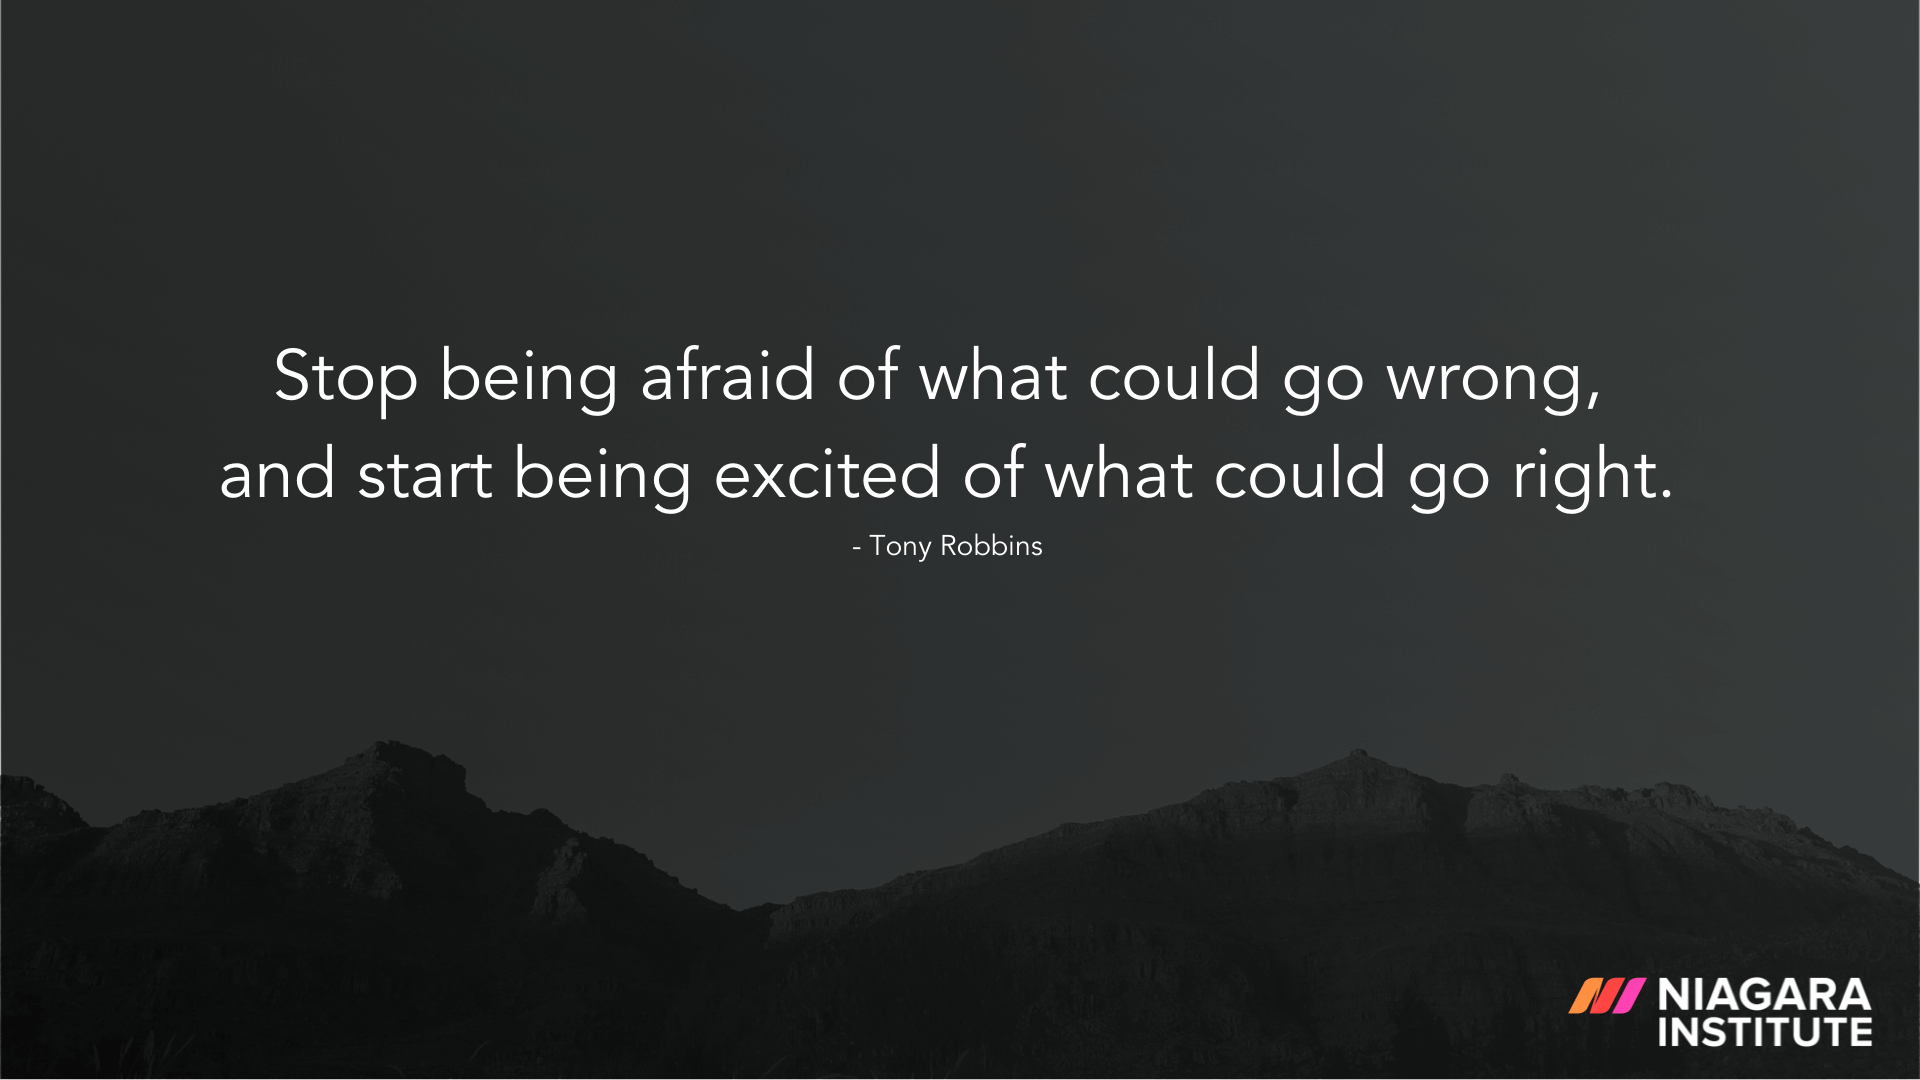 Stop being afraid of what could go wrong, and start being excited of what could go right. - Tony Robbins